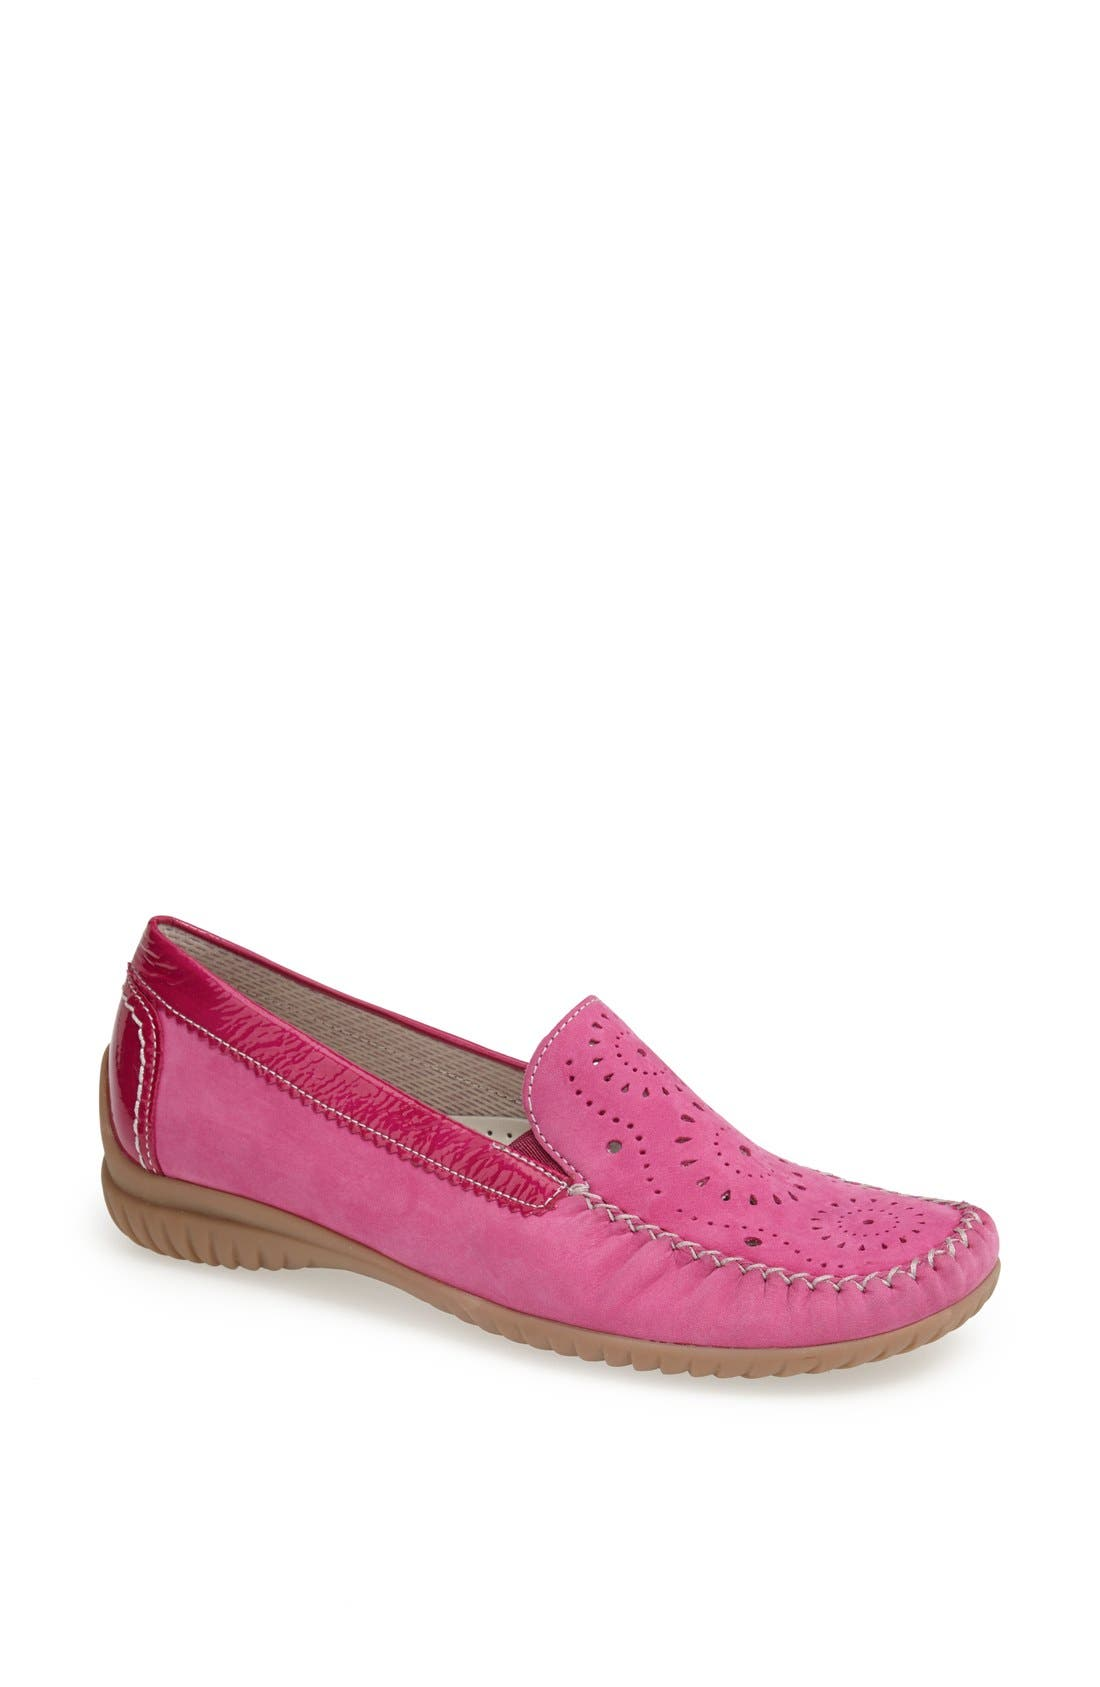 Alternate Image 1 Selected - Gabor Perforated Leather Flat